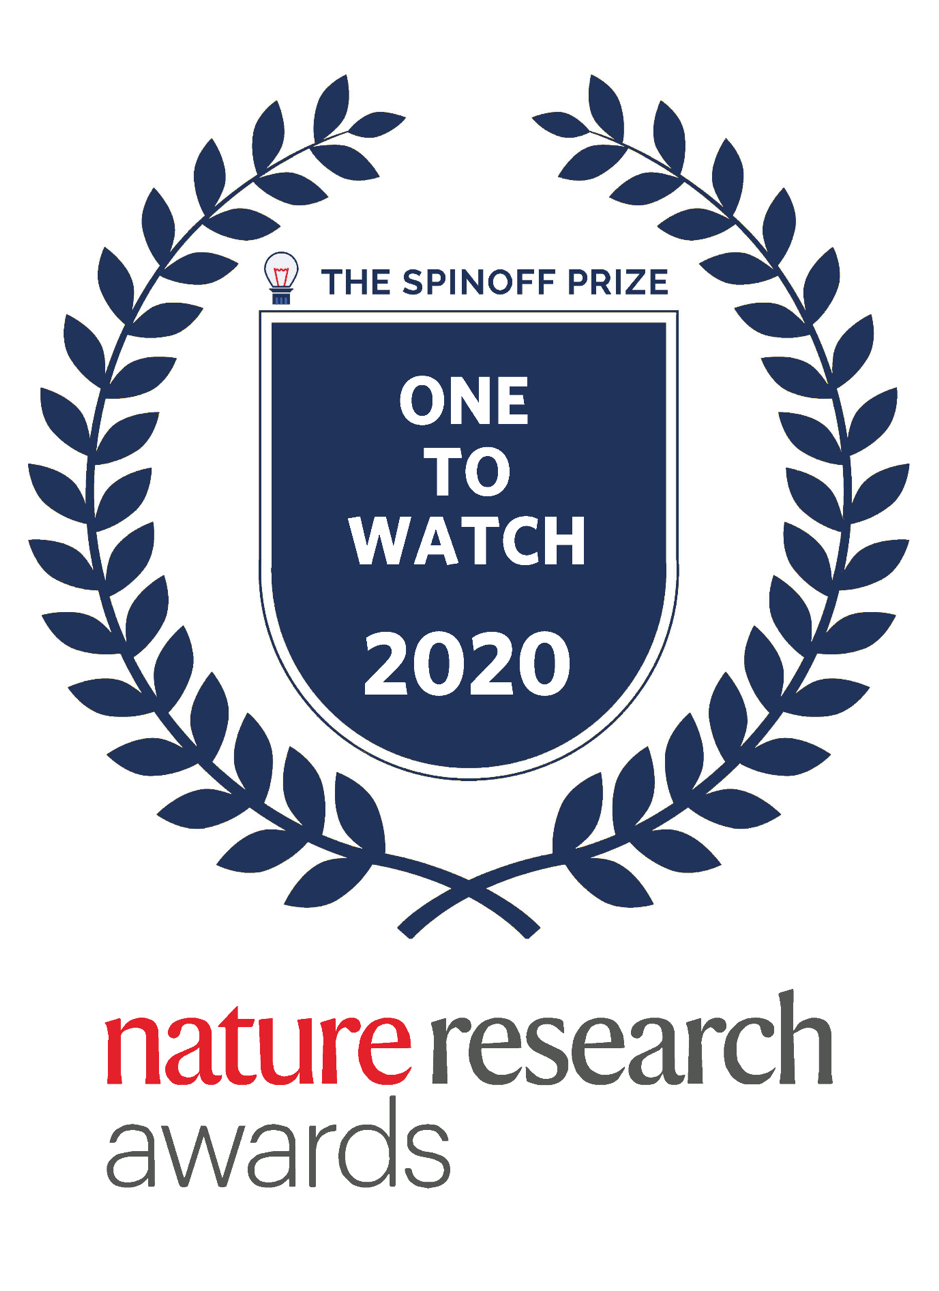 nature research awards one to watch 2020 badge